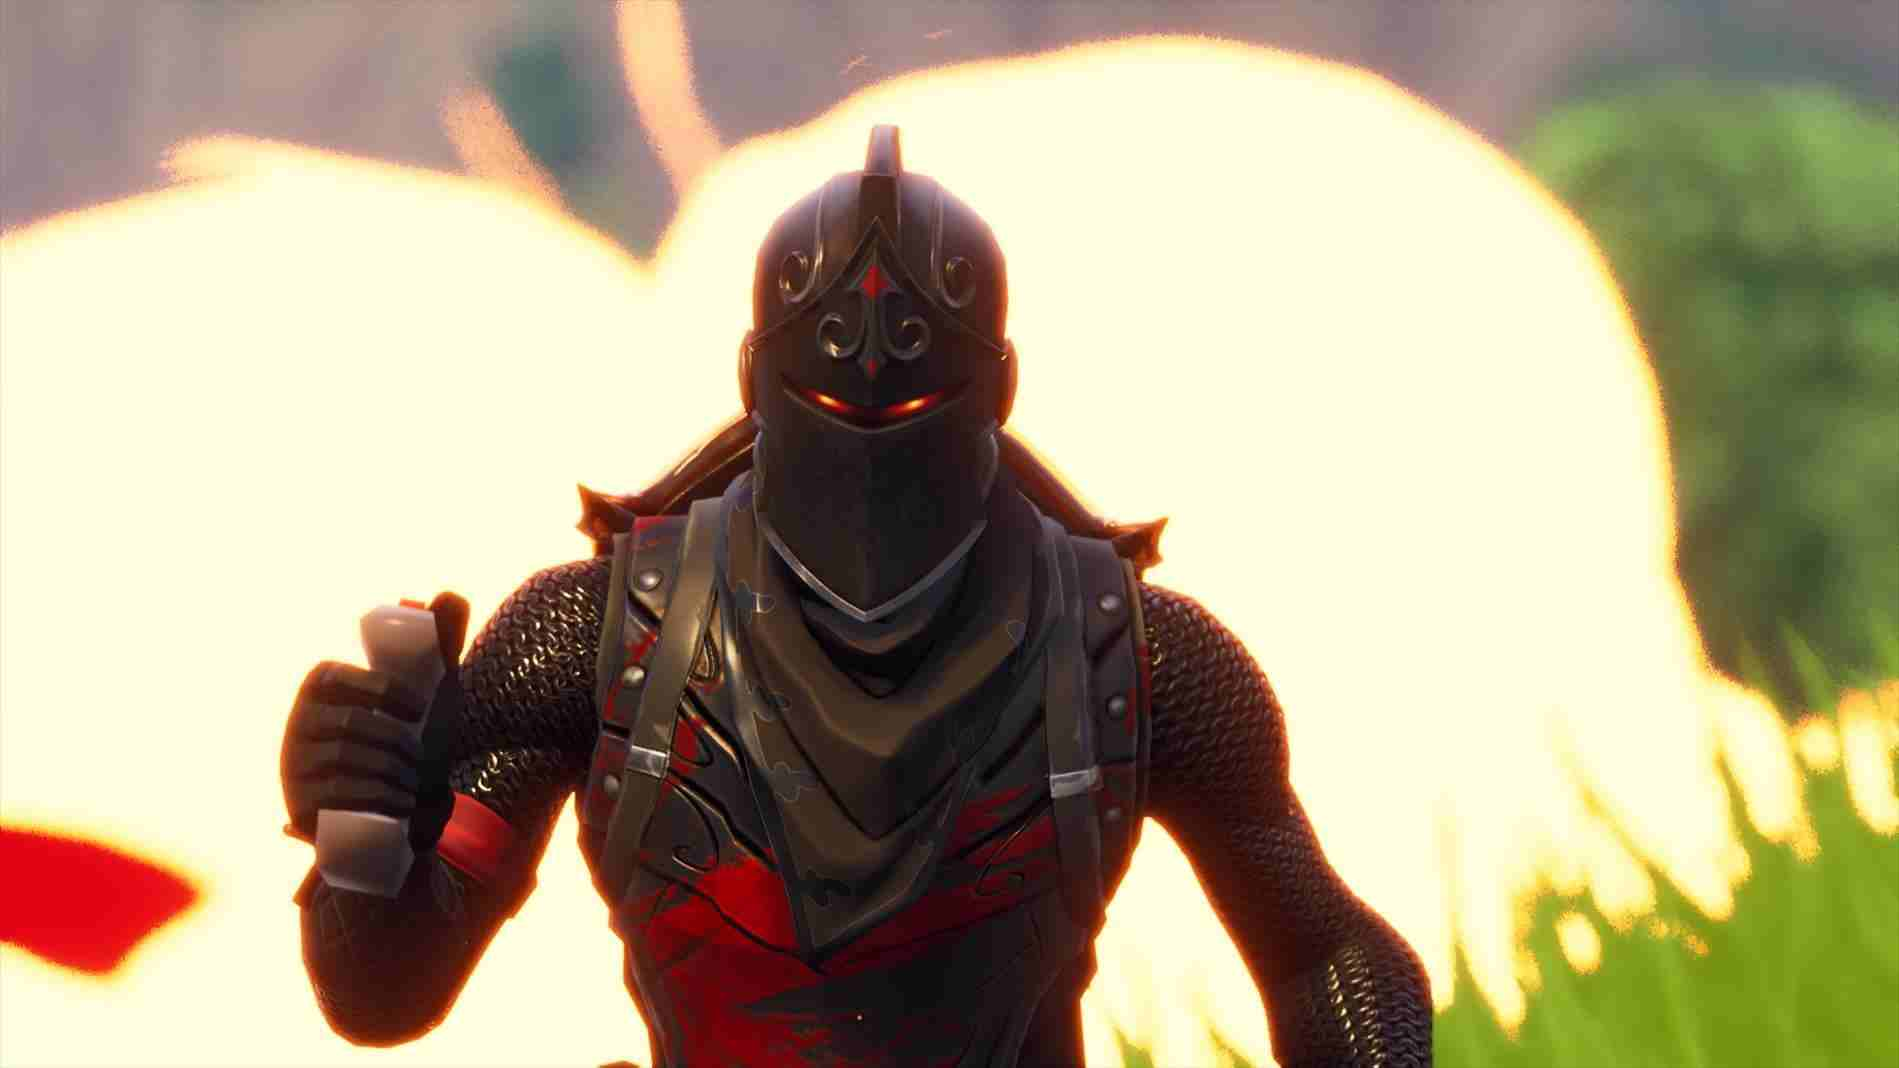 1899x1068 Wallpaper Fortnitebrrhredditcom Mobile Raven Black Knight Fortnite ...